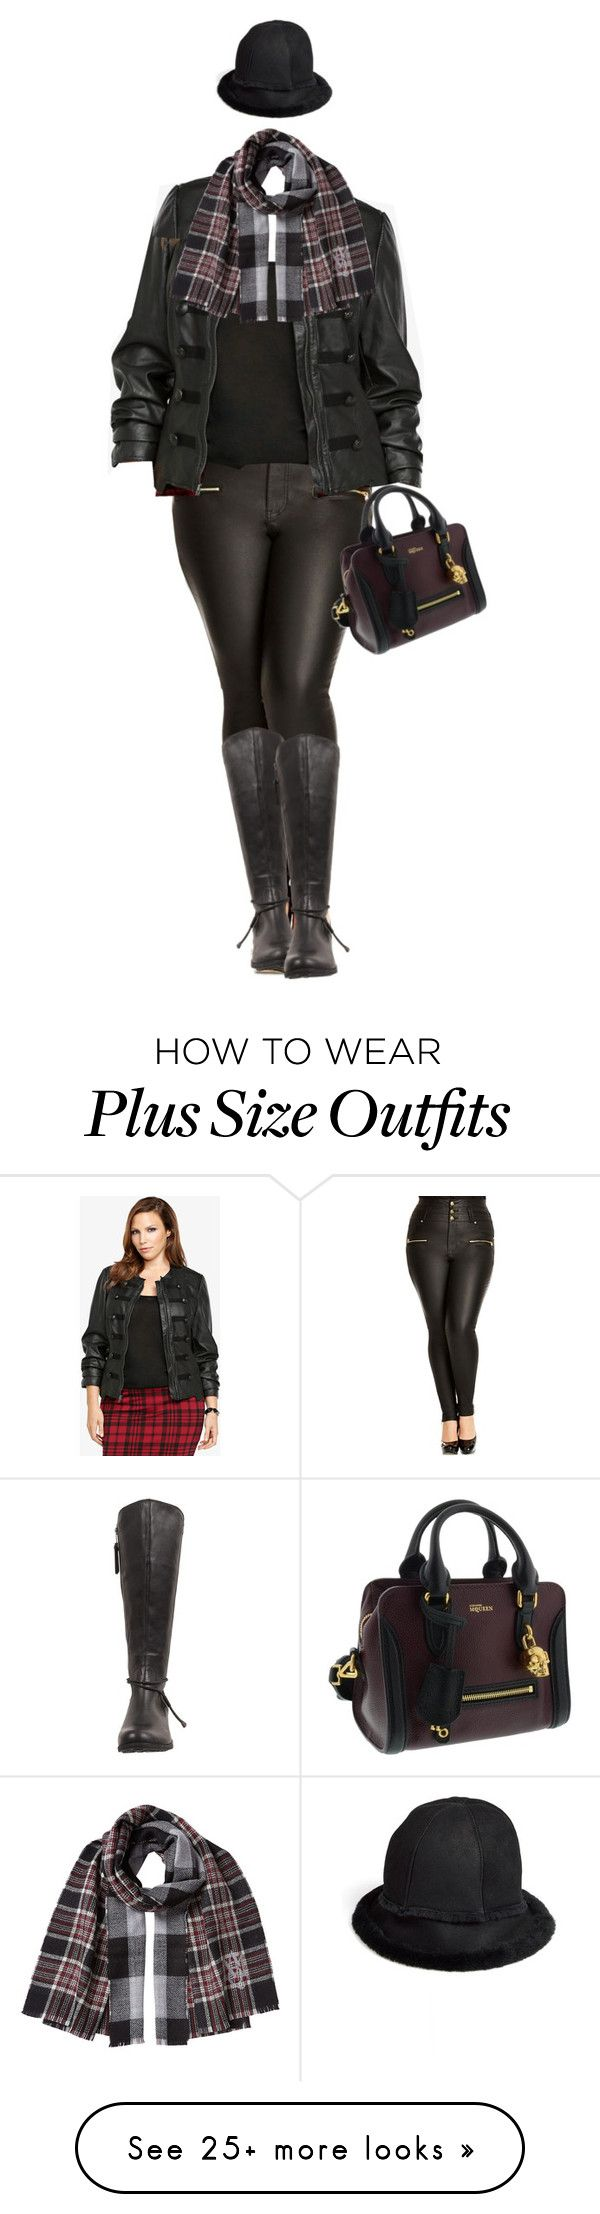 """""""Pam Plus Size Fashion"""" by dkelley-0711 on Polyvore featuring City Chic, Torrid, UGG Australia, Alexander McQueen, AlexanderMcQueen, ugg, torrid, 2015wishlist and plus size clothing"""